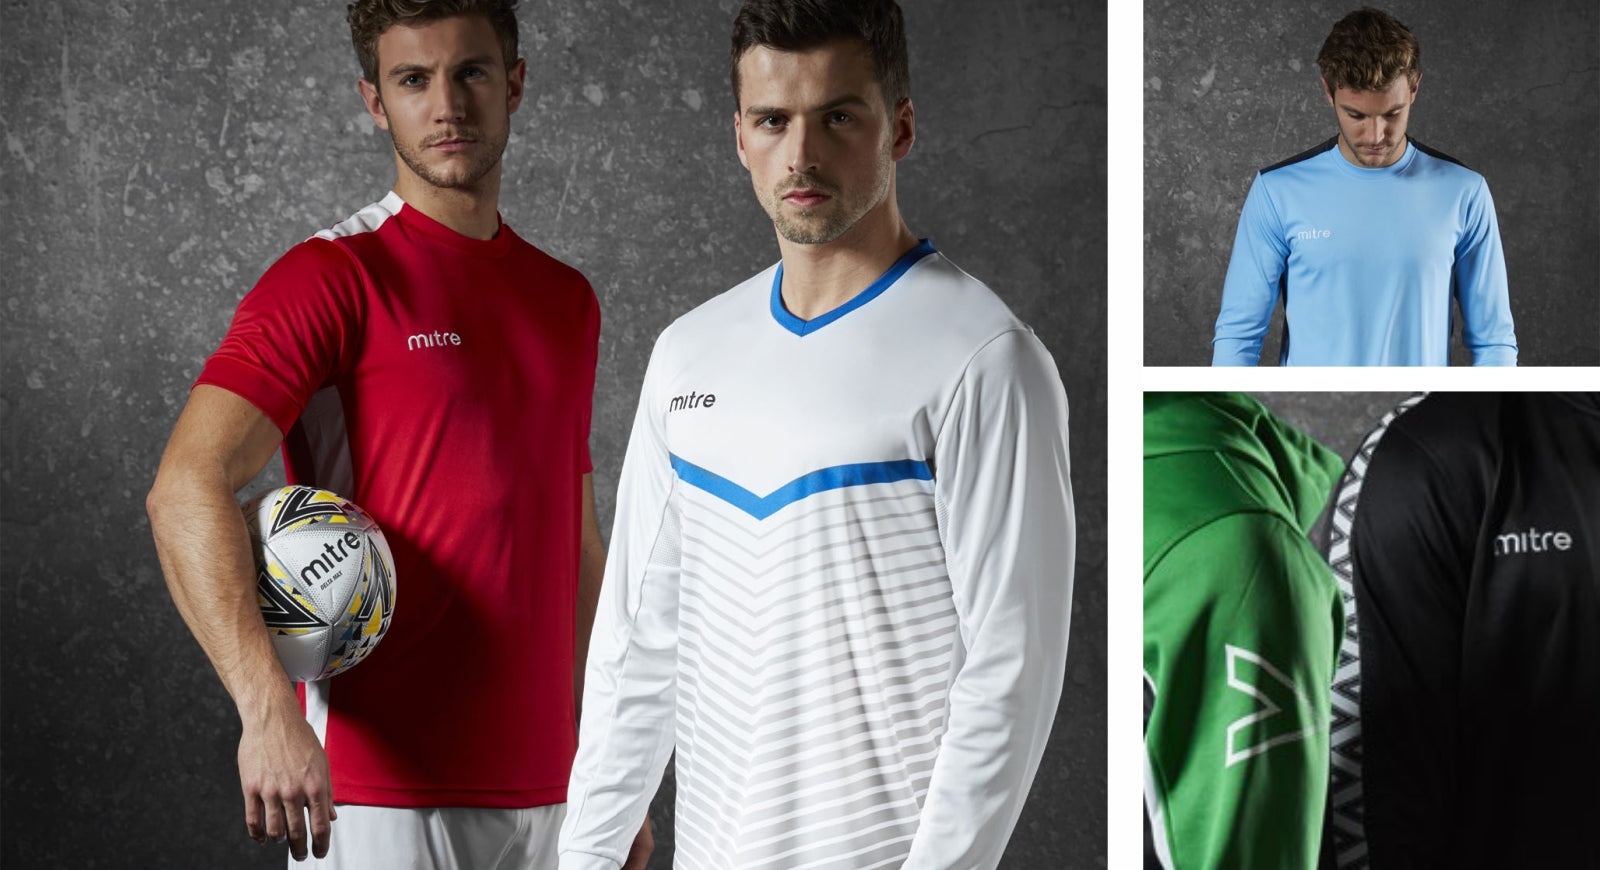 Mitre teamwear products